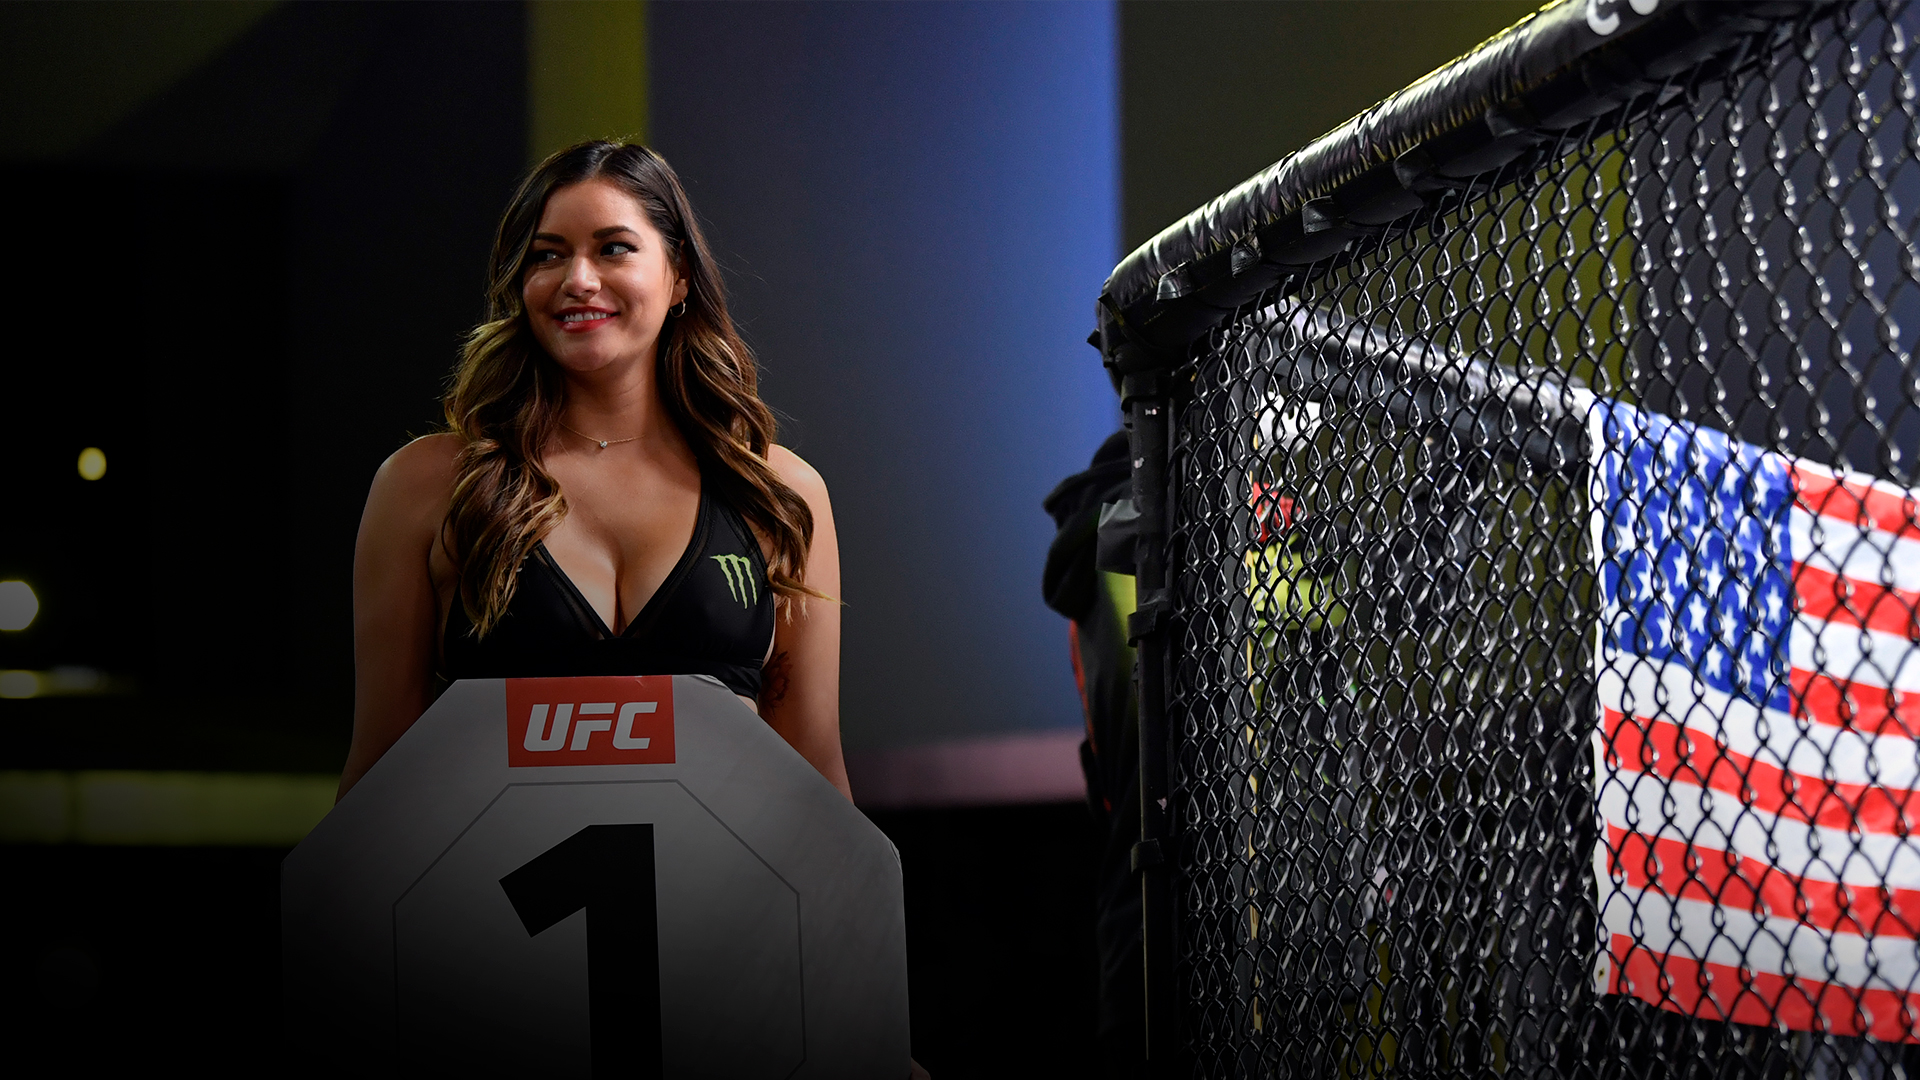 UFC Octagon Girl Vanessa Hanson introduces a round during the UFC Fight Night event at UFC APEX on October 31, 2020 in Las Vegas, Nevada. (Photo by Jeff Bottari/Zuffa LLC)